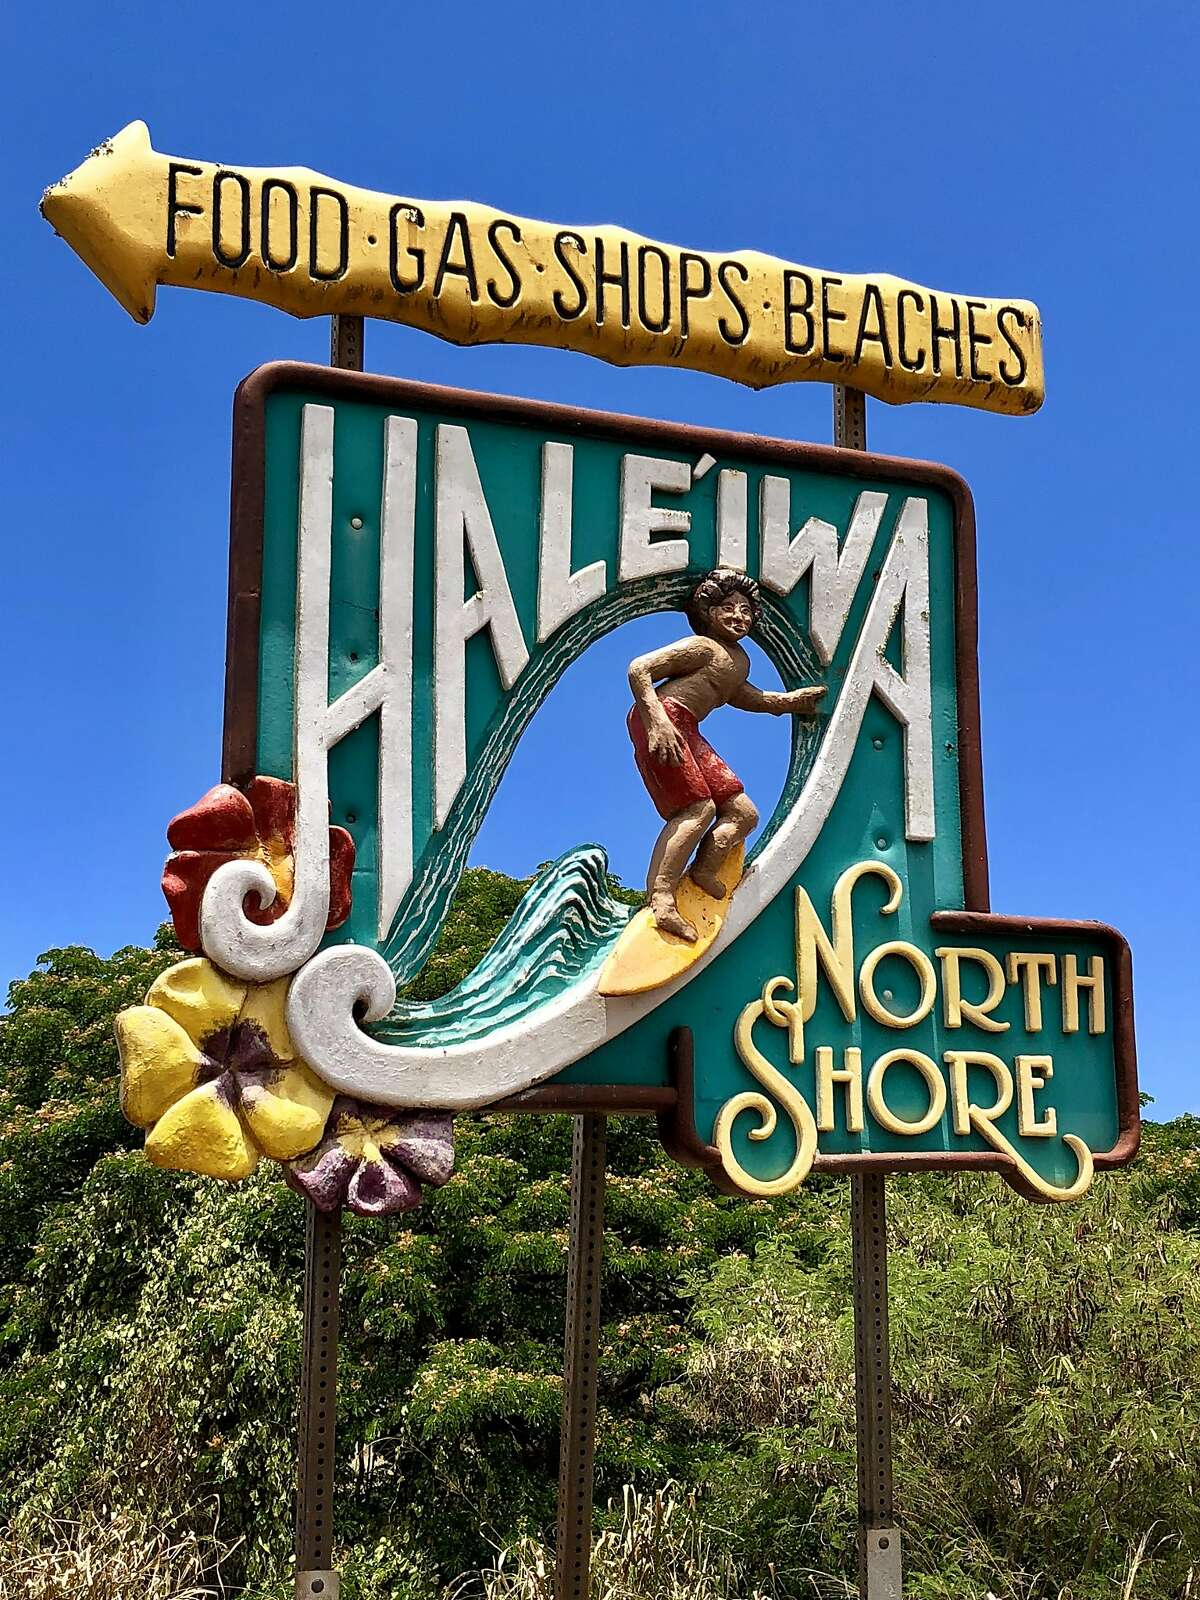 Oahu's North Shore is legendary in big wave surfing, with a 7-mile stretch of winter waves, including the Banzai Pipeline and Waimea Bay.